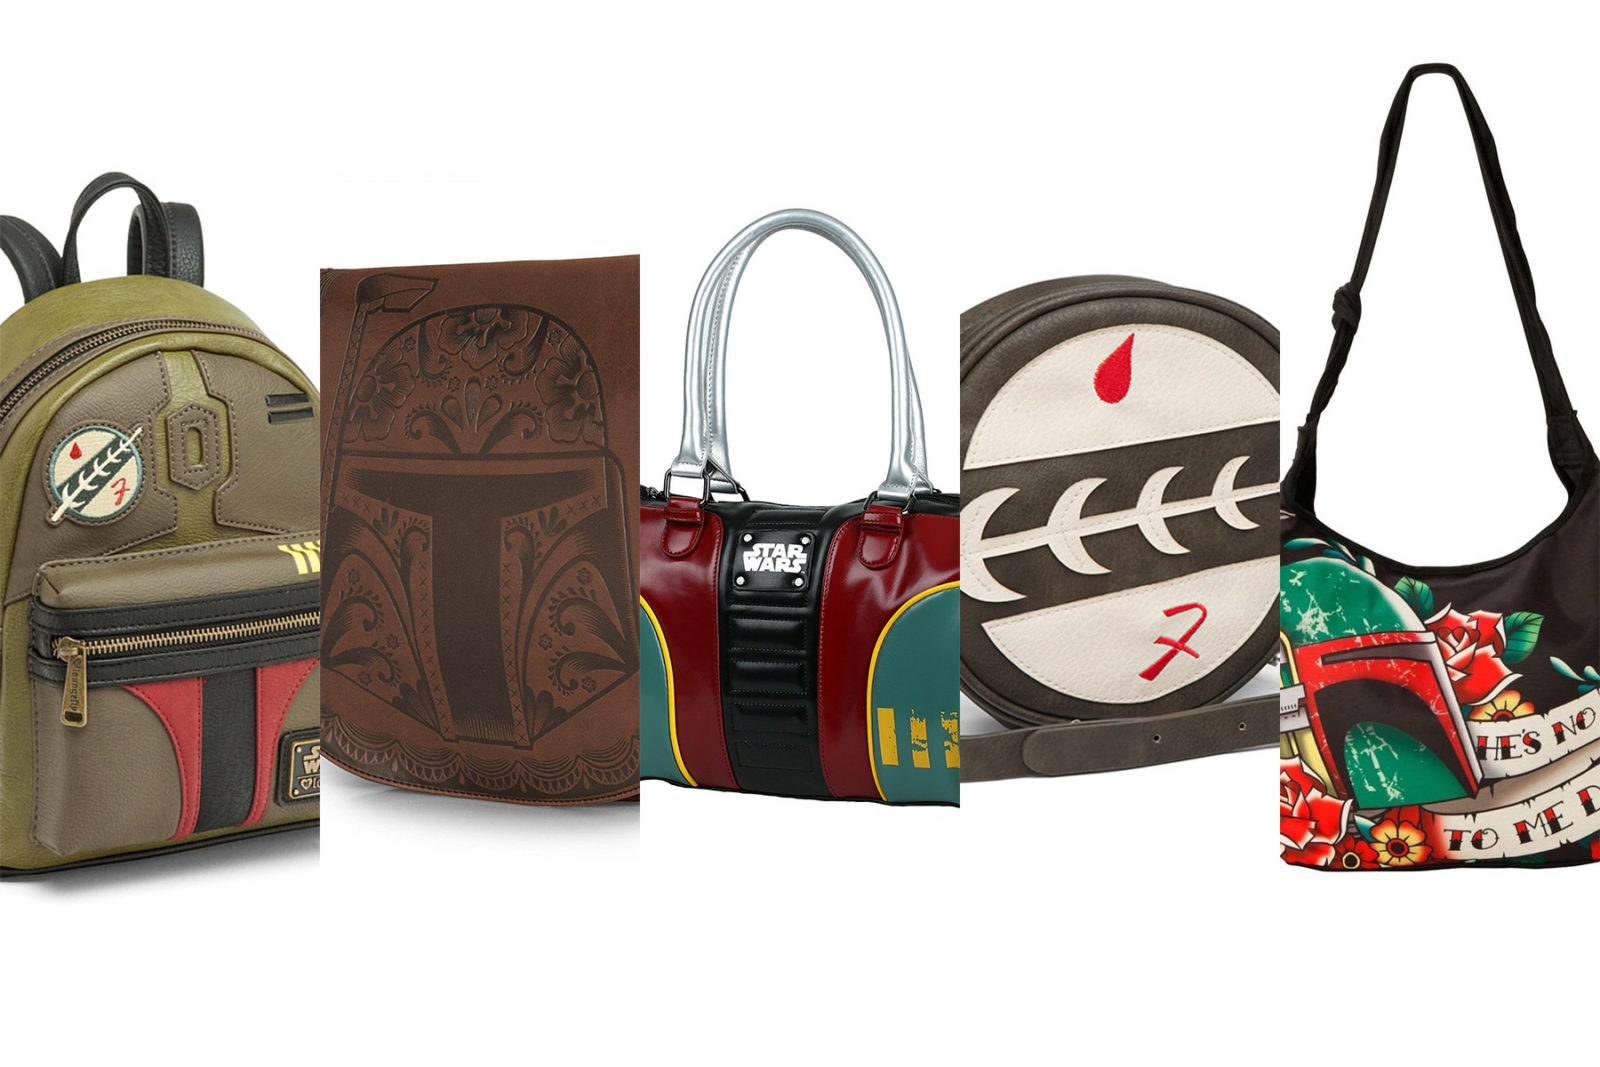 Leia's List – Boba Fett Themed Handbags